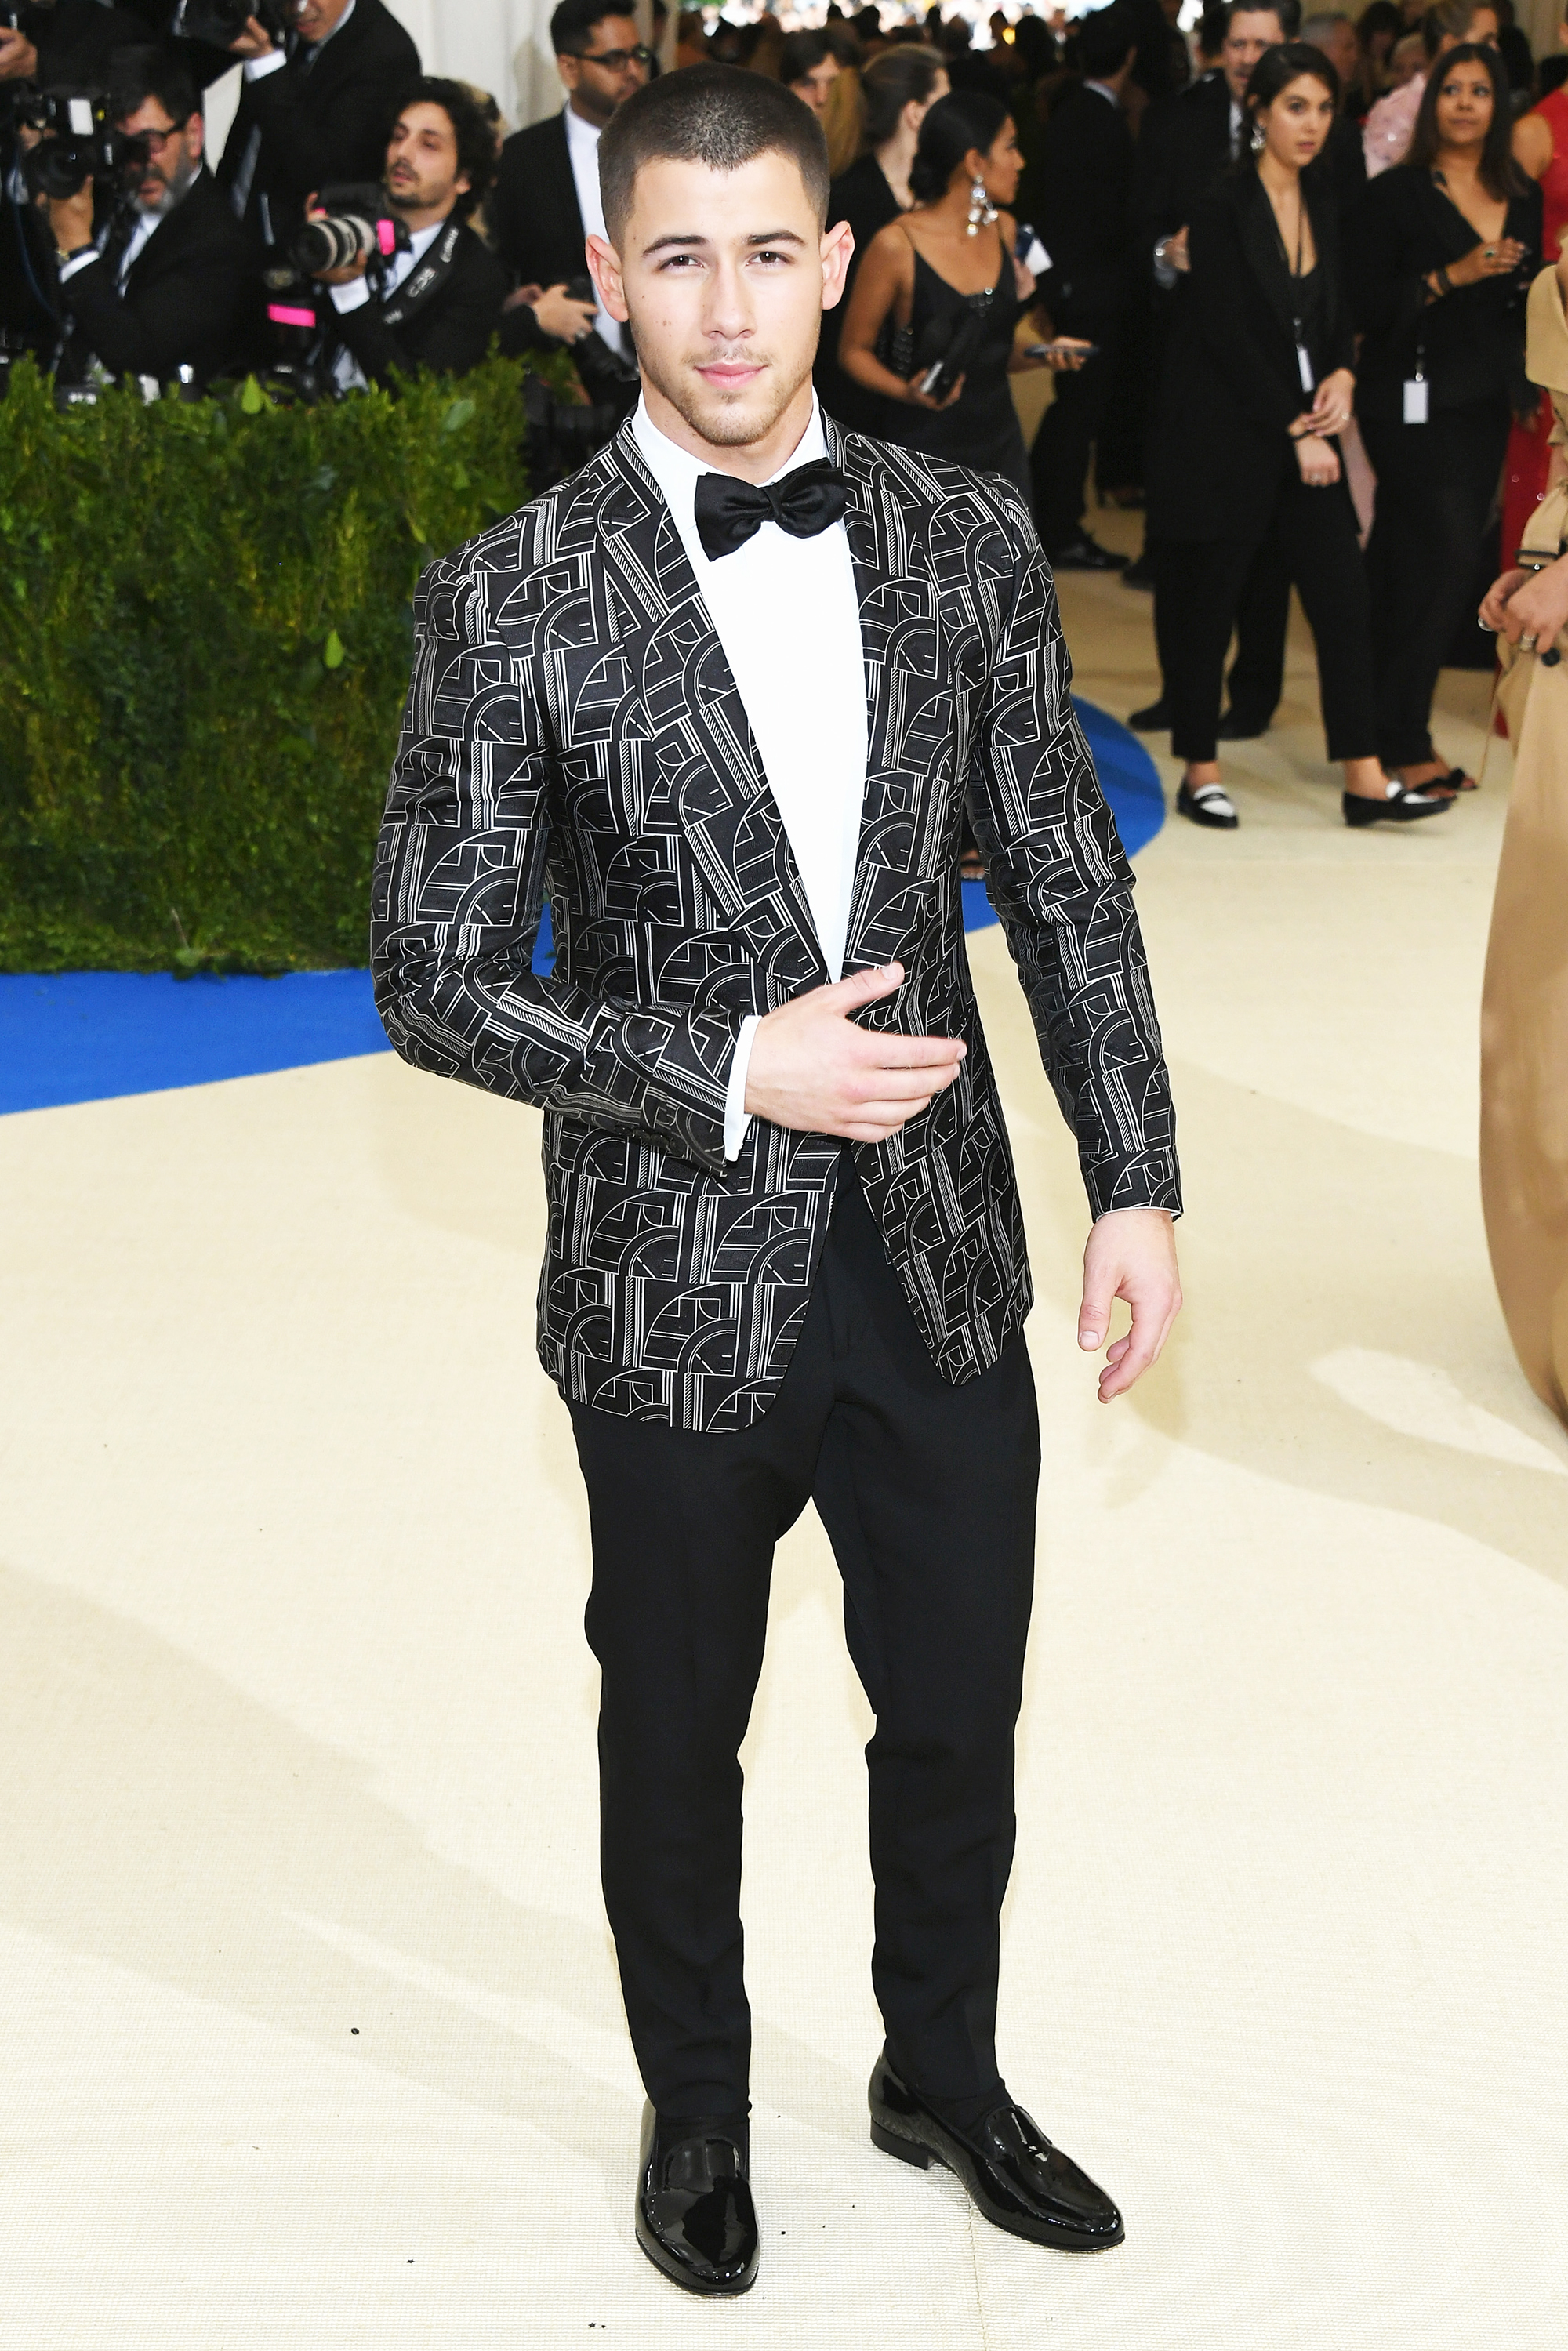 Nick Jonas attends The Metropolitan Museum of Art's Costume Institute benefit gala celebrating the opening of the Rei Kawakubo/Comme des Garçons: Art of the In-Between exhibition in New York City, on May 1, 2017.